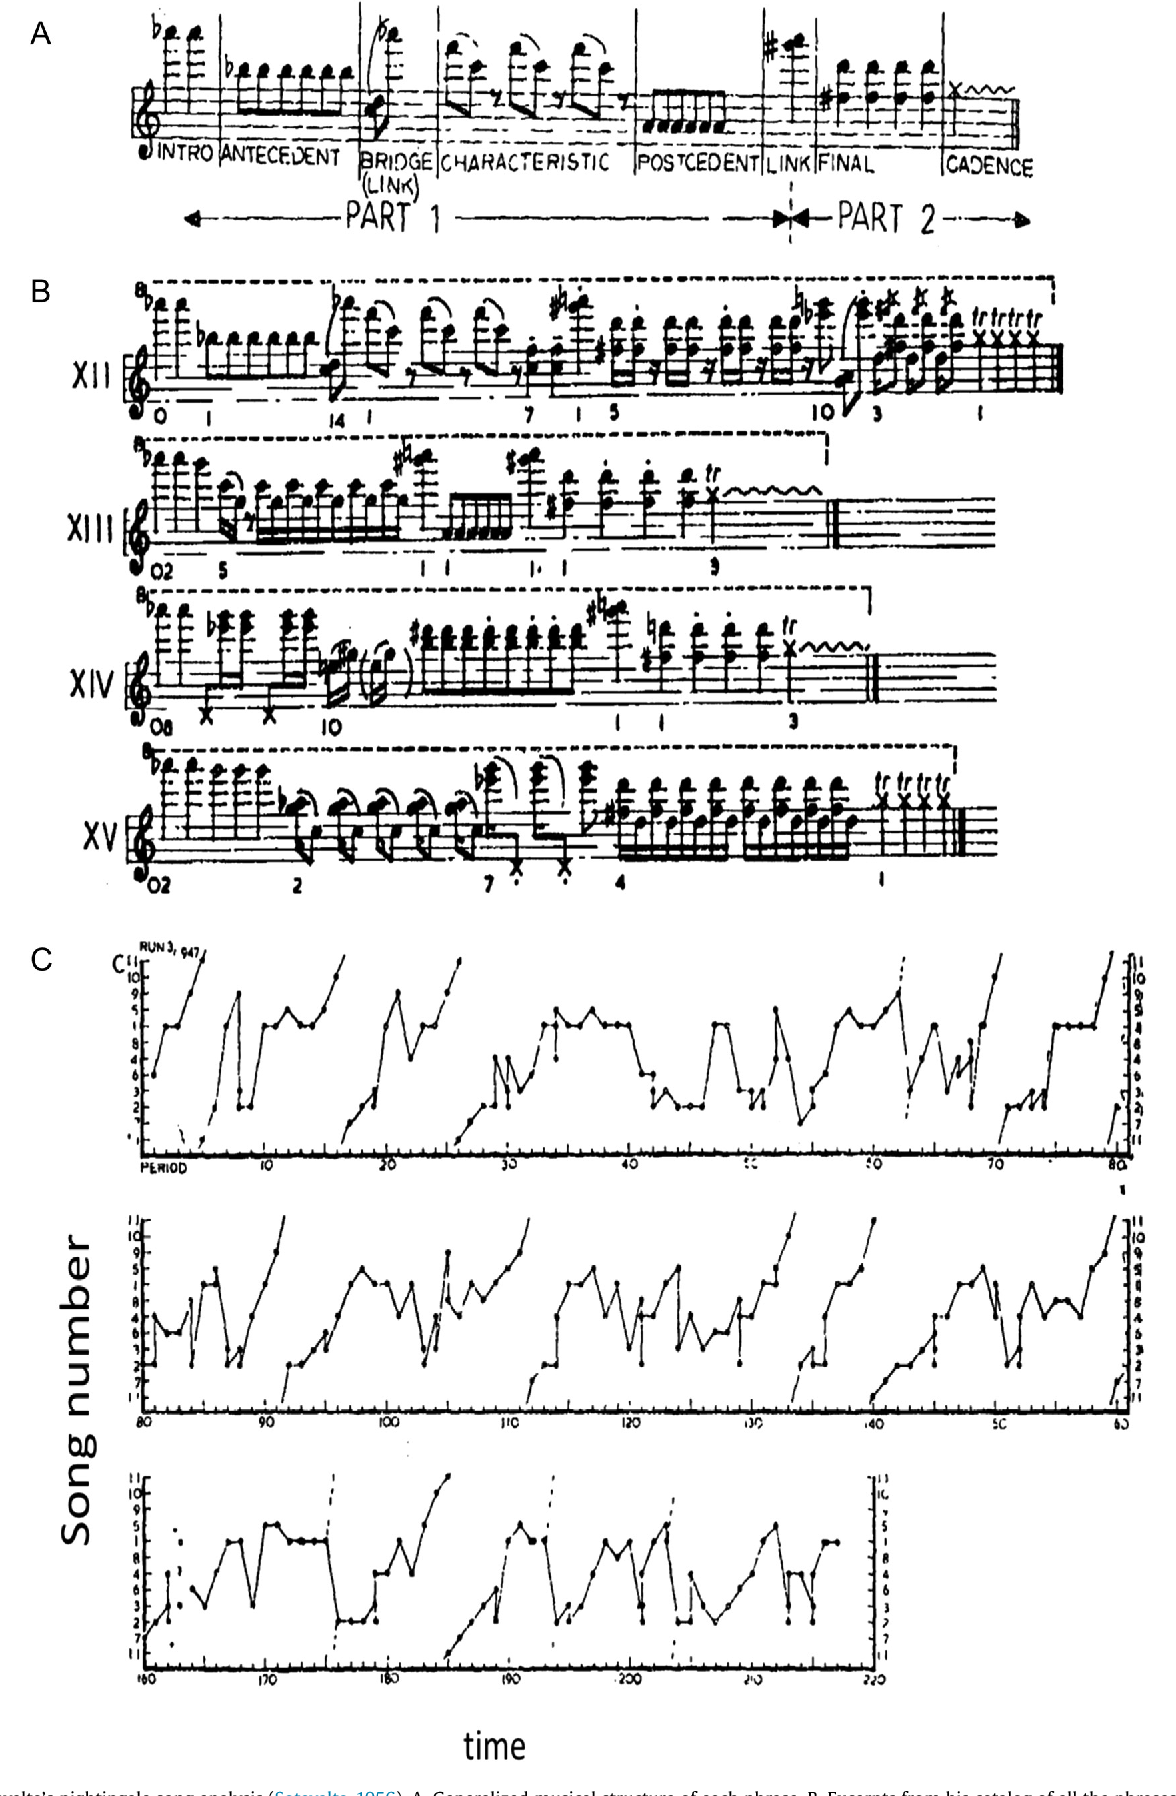 Investigation of musicality in birdsong - Semantic Scholar